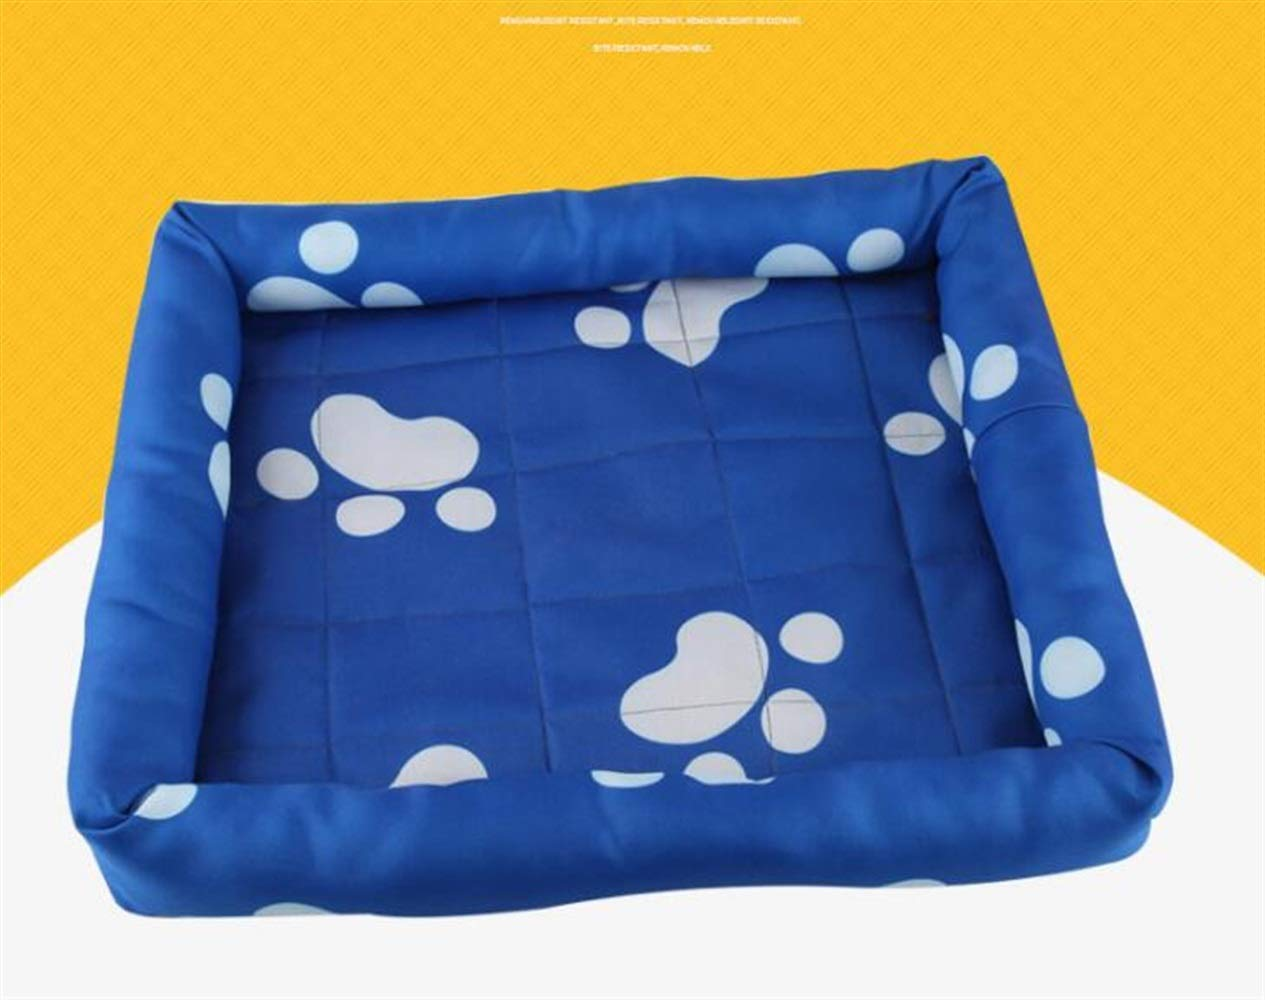 CFHJN HOME Water Resistant Dog Crate Bed for Summer(bluee,L) Pet Bed Blanket